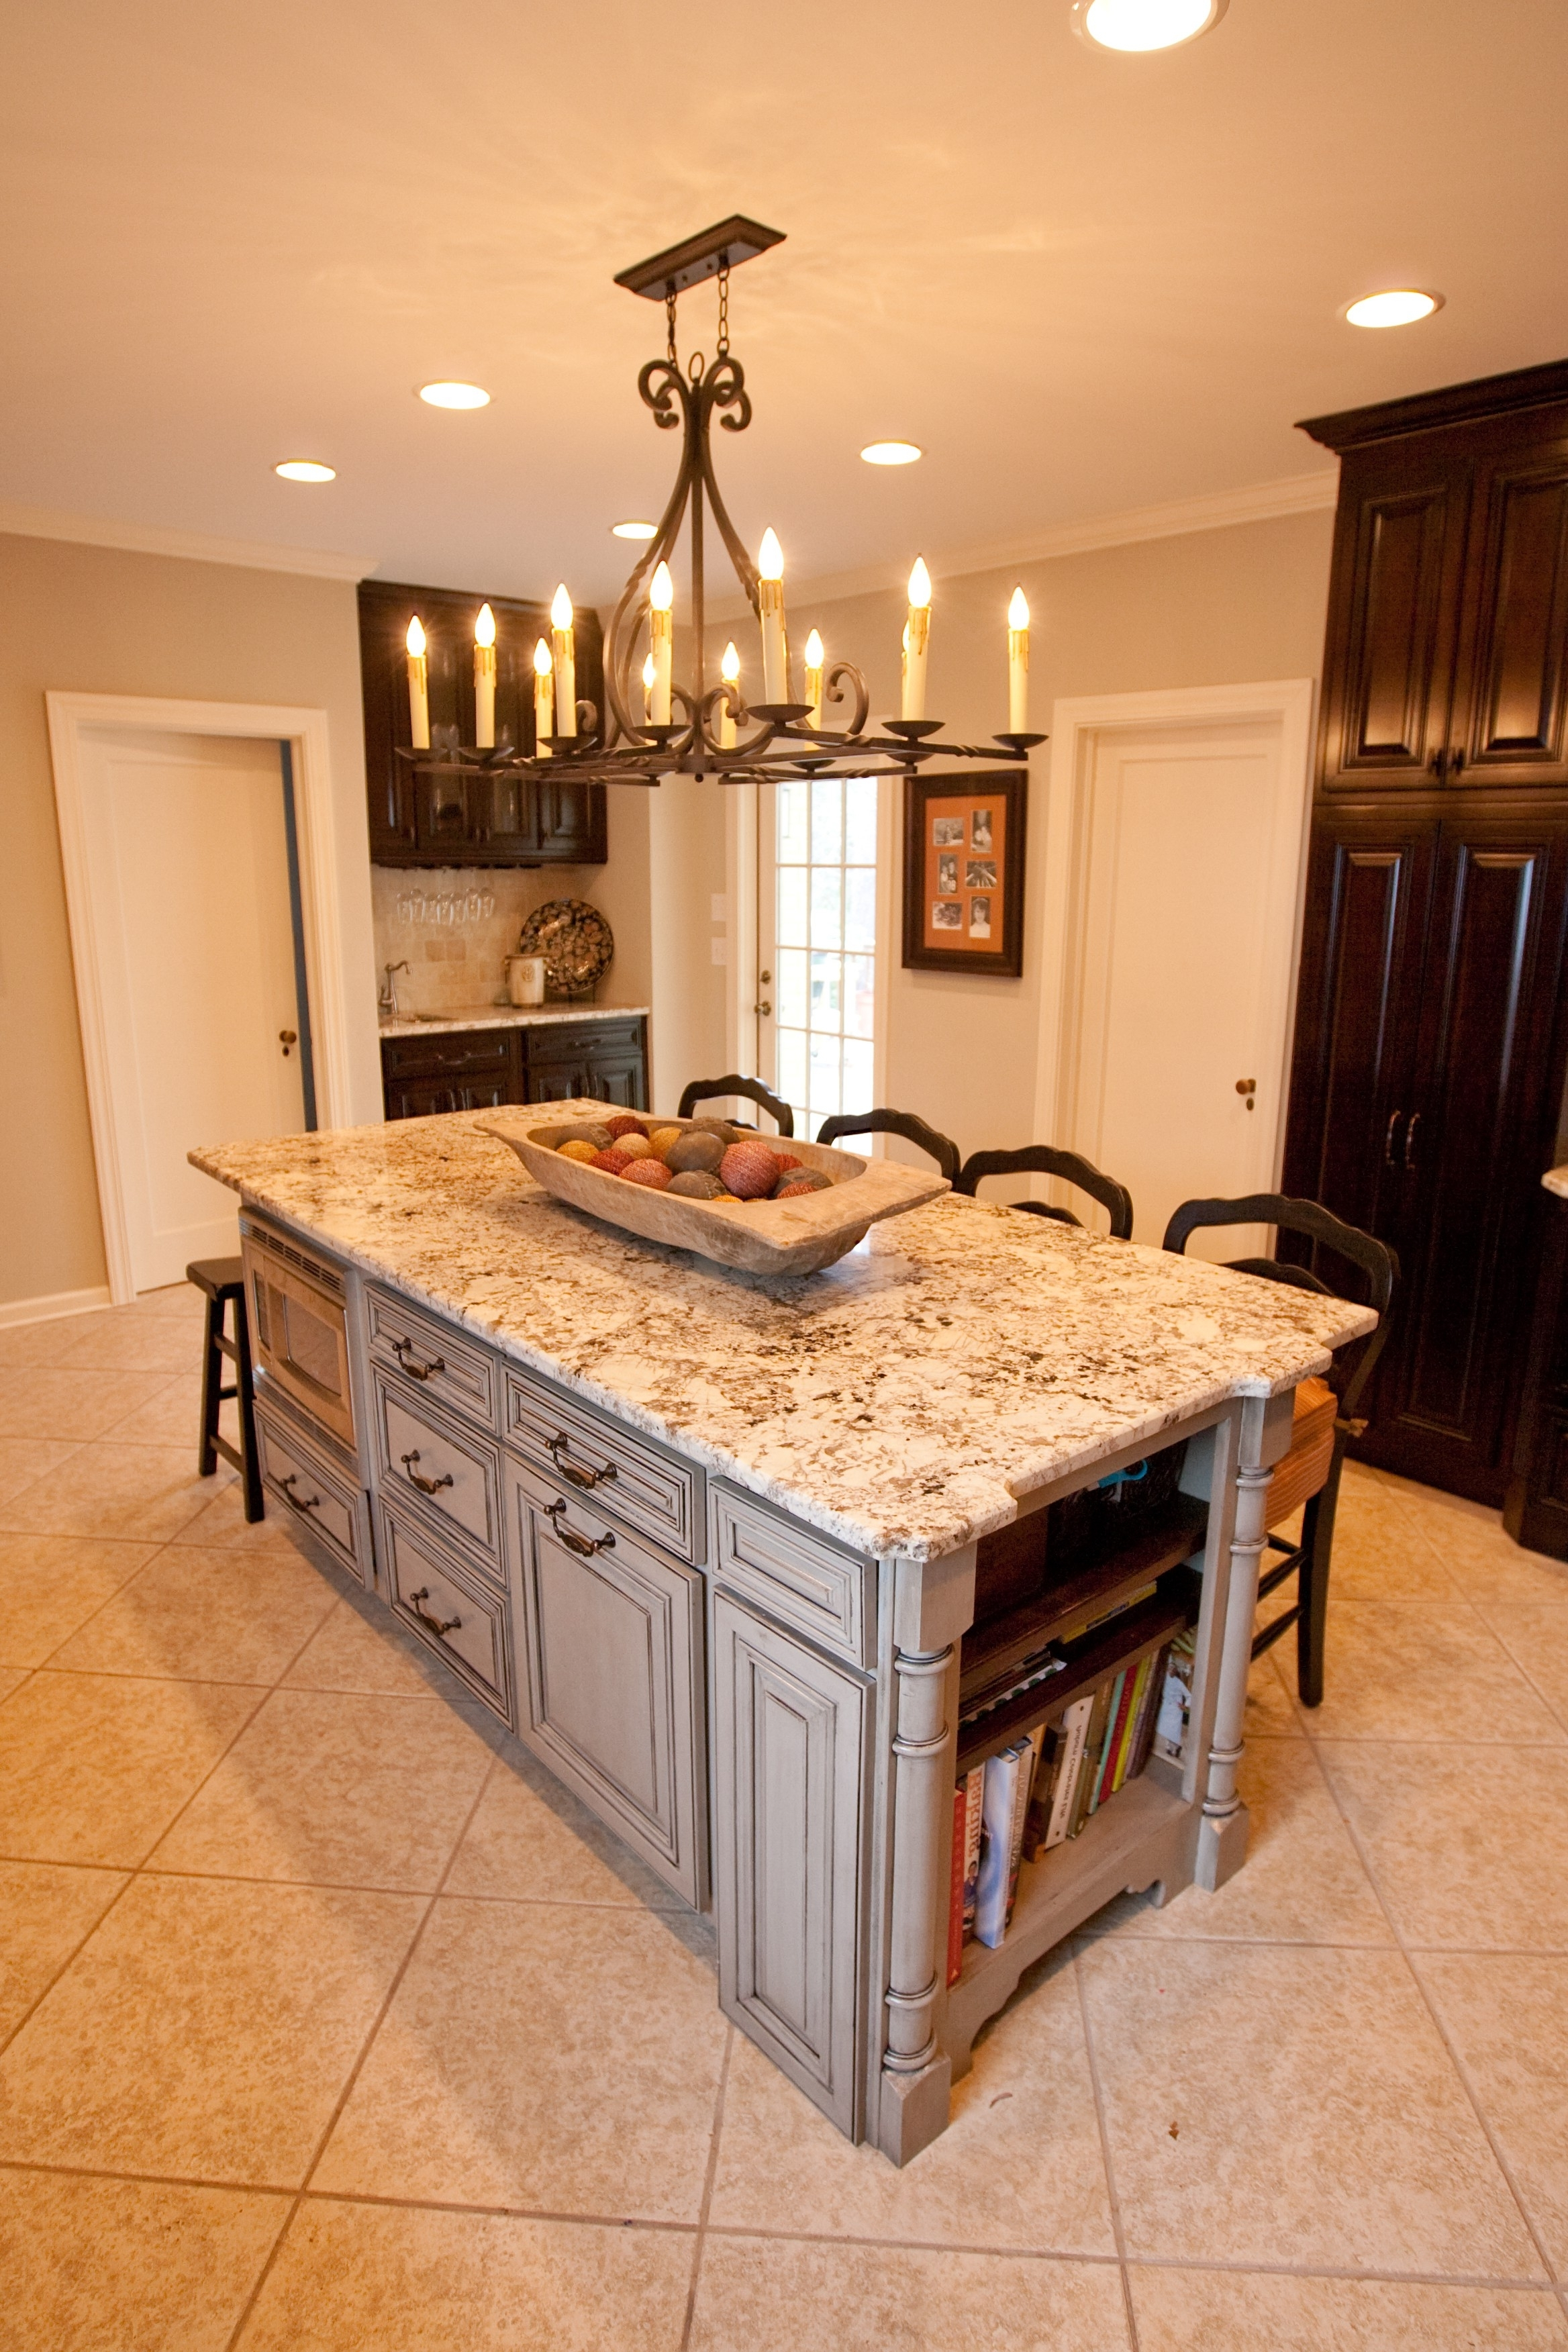 Current Beautiful Kitchen With Art Decor Wrought Iron And Kitchen Intended For Small Rustic Kitchen Chandeliers (View 2 of 15)